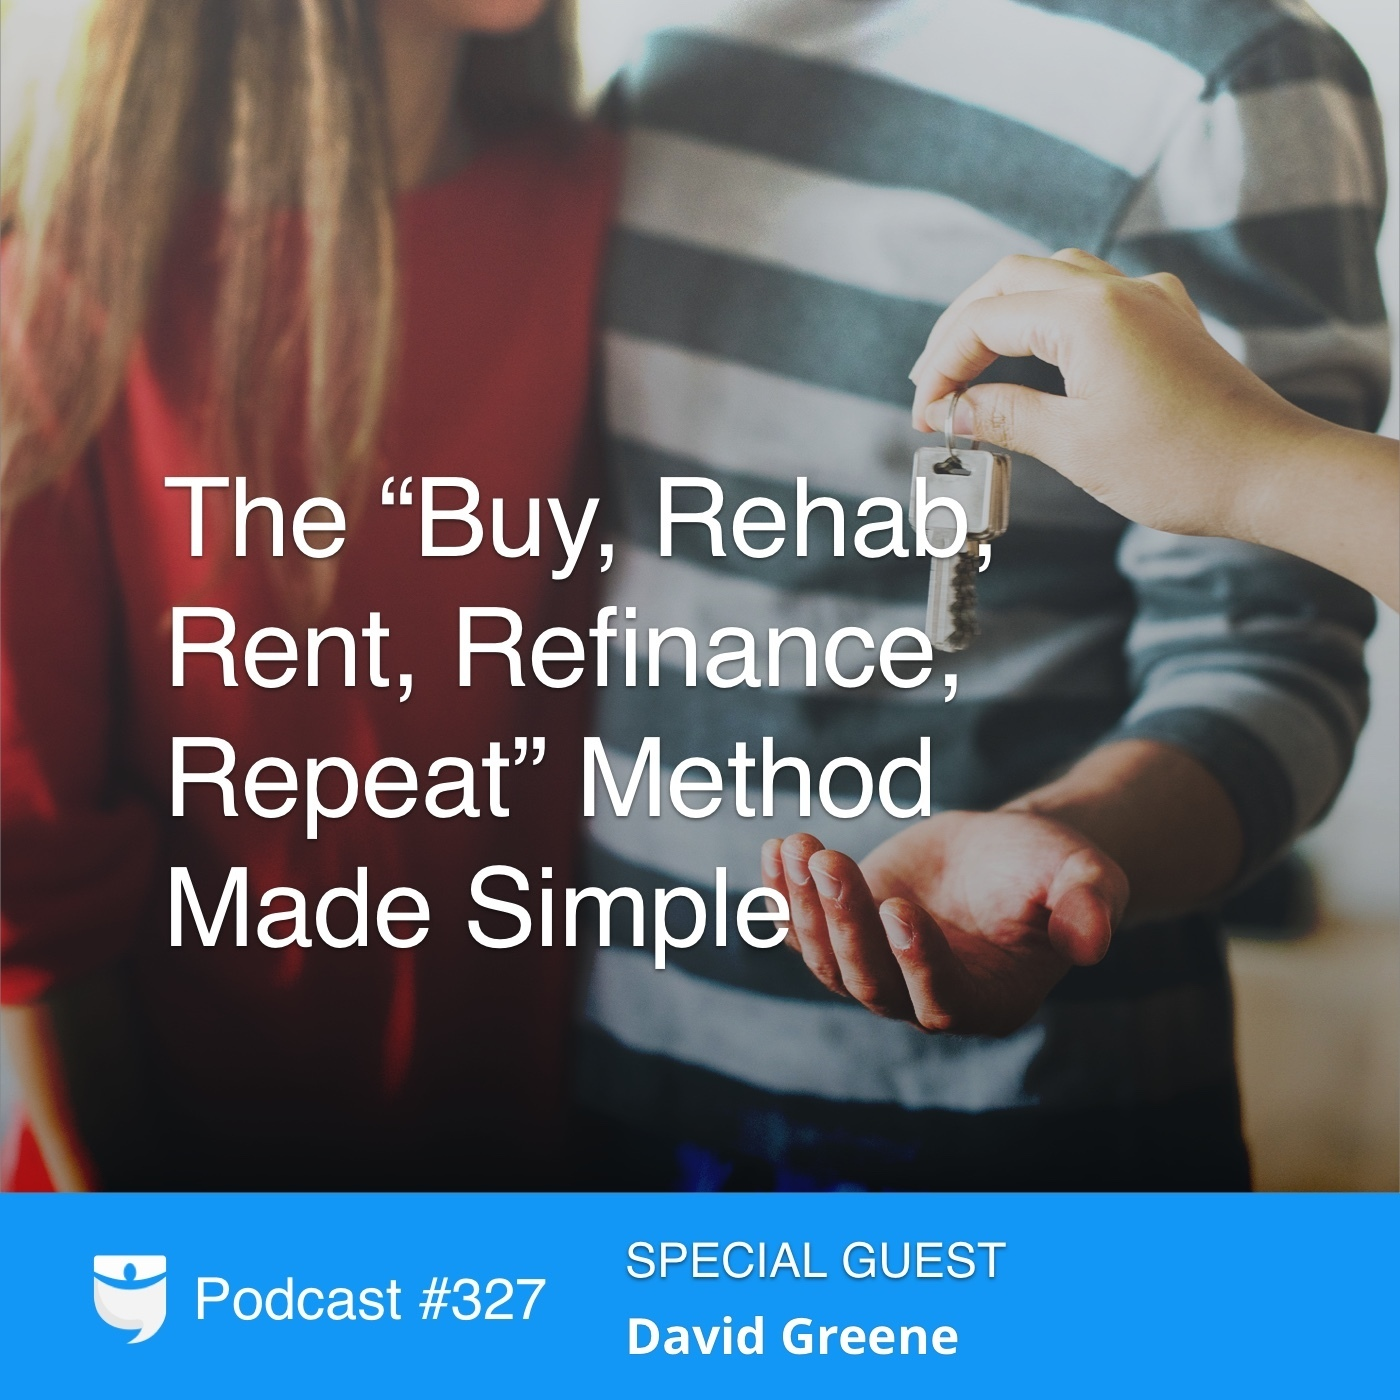 "#327: The ""Buy, Rehab, Rent, Refinance, Repeat"" Method Made Simple With David Greene"